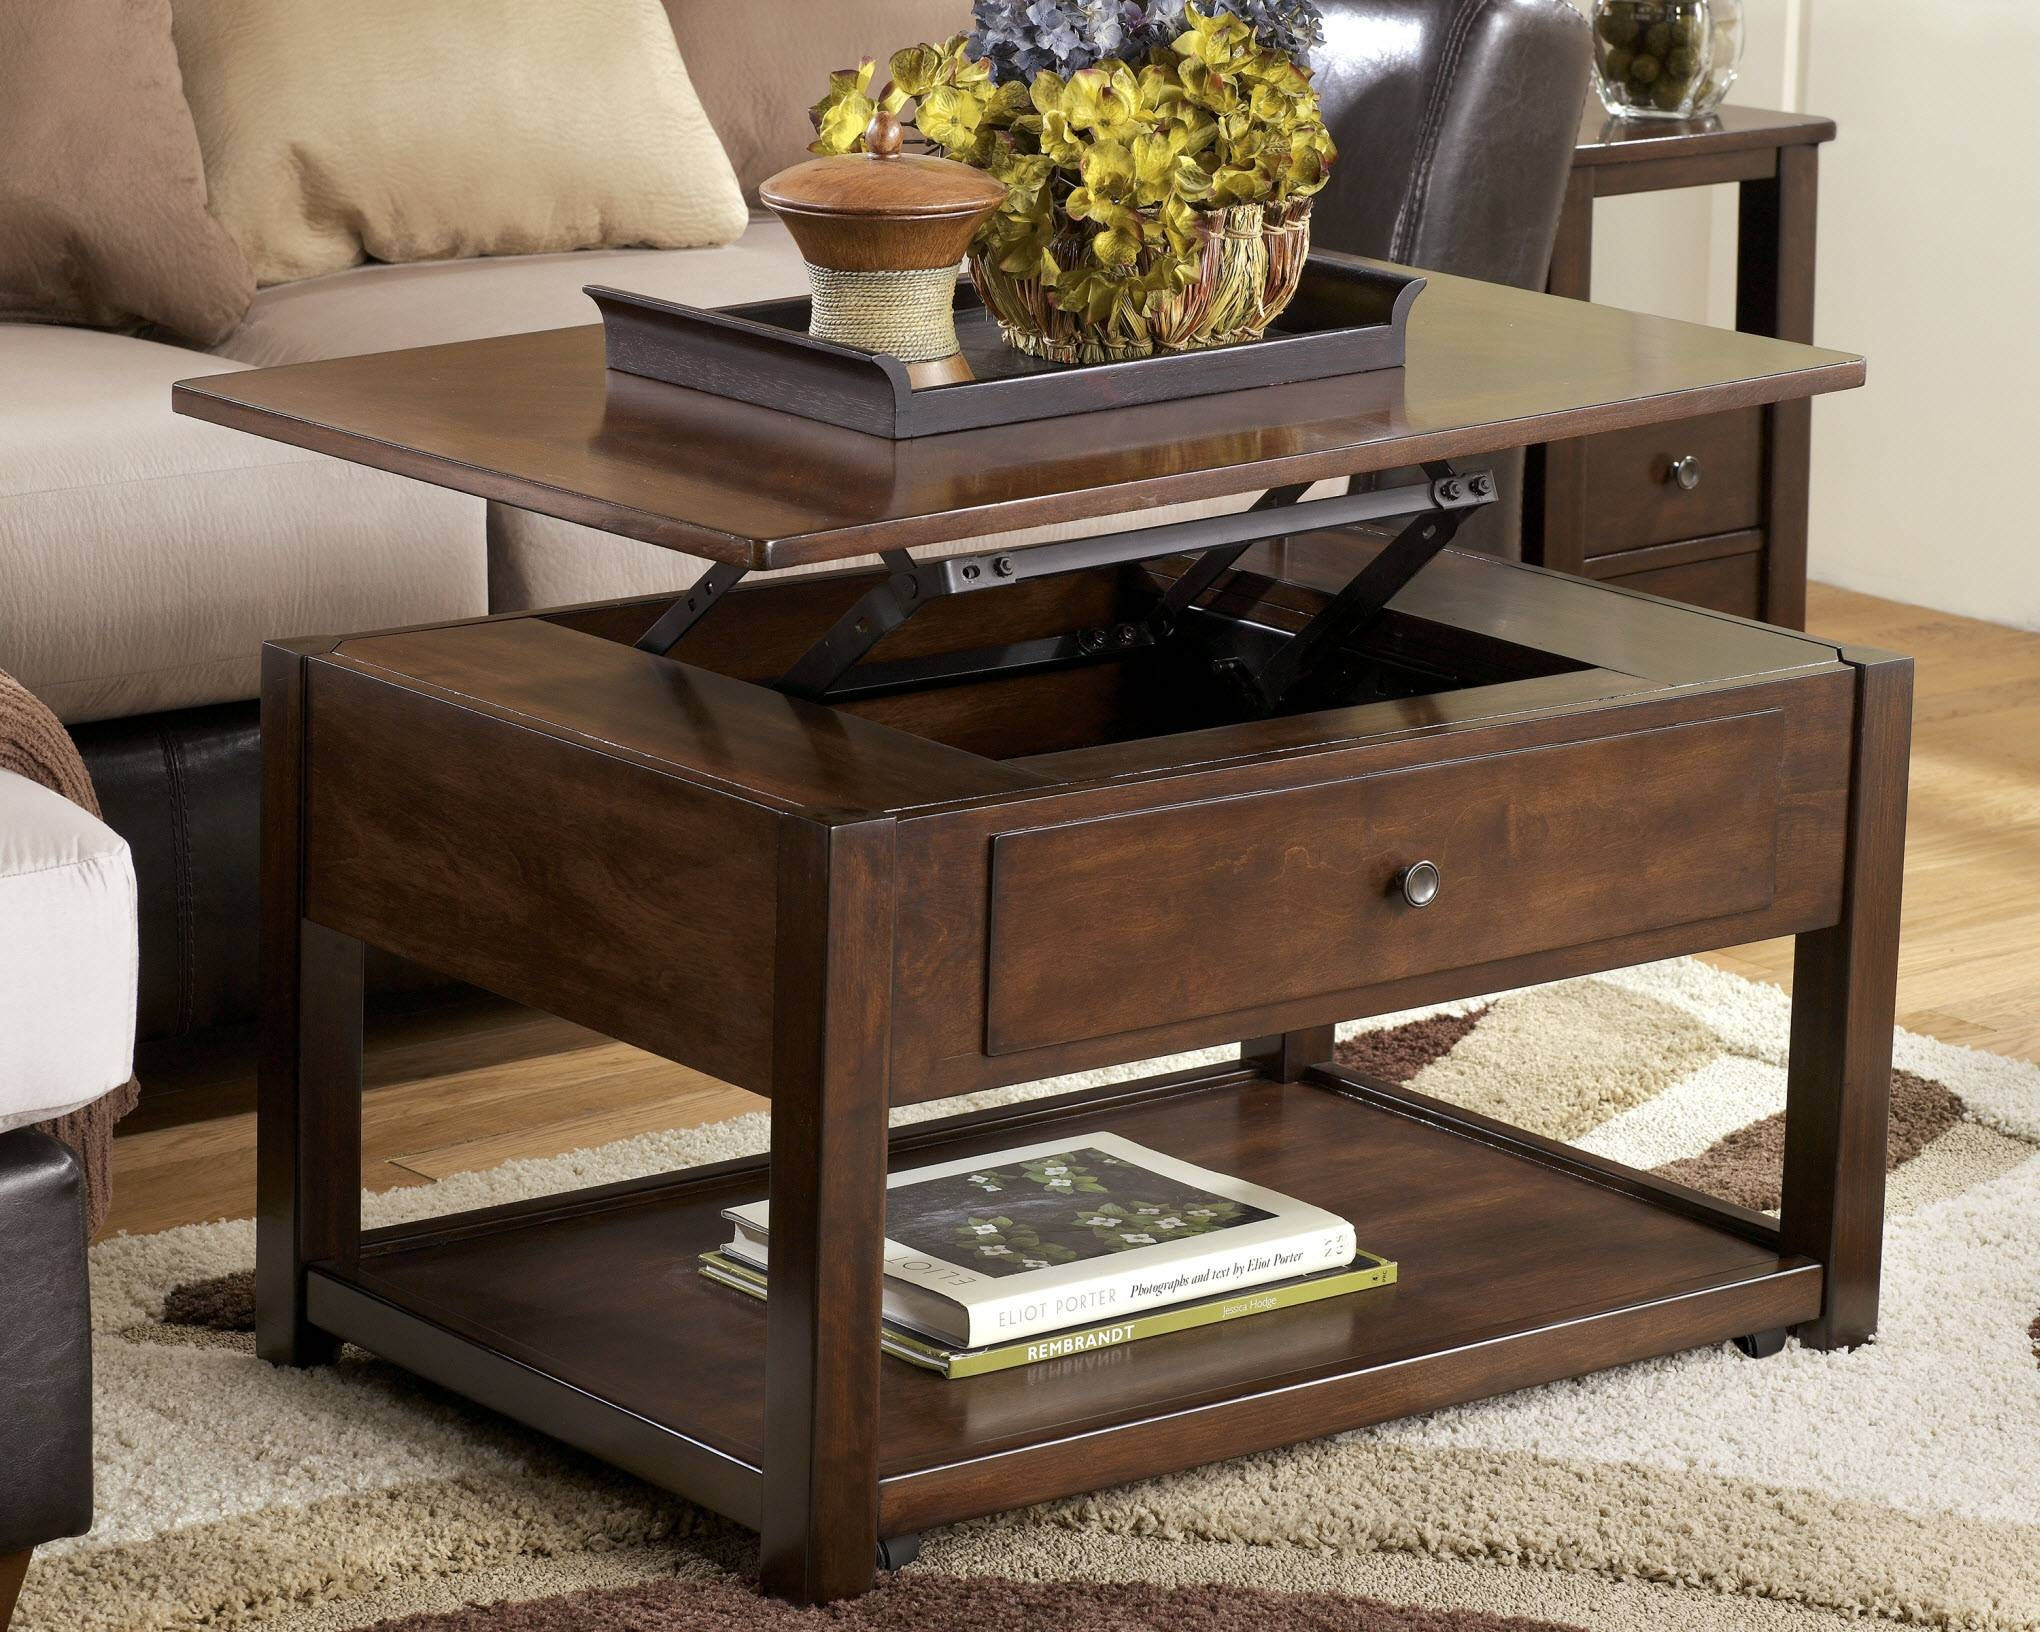 Coffee Table: Perfect Small Lift Top Coffee Table Ideas Lift Top within Round Coffee Tables With Drawers (Image 5 of 30)